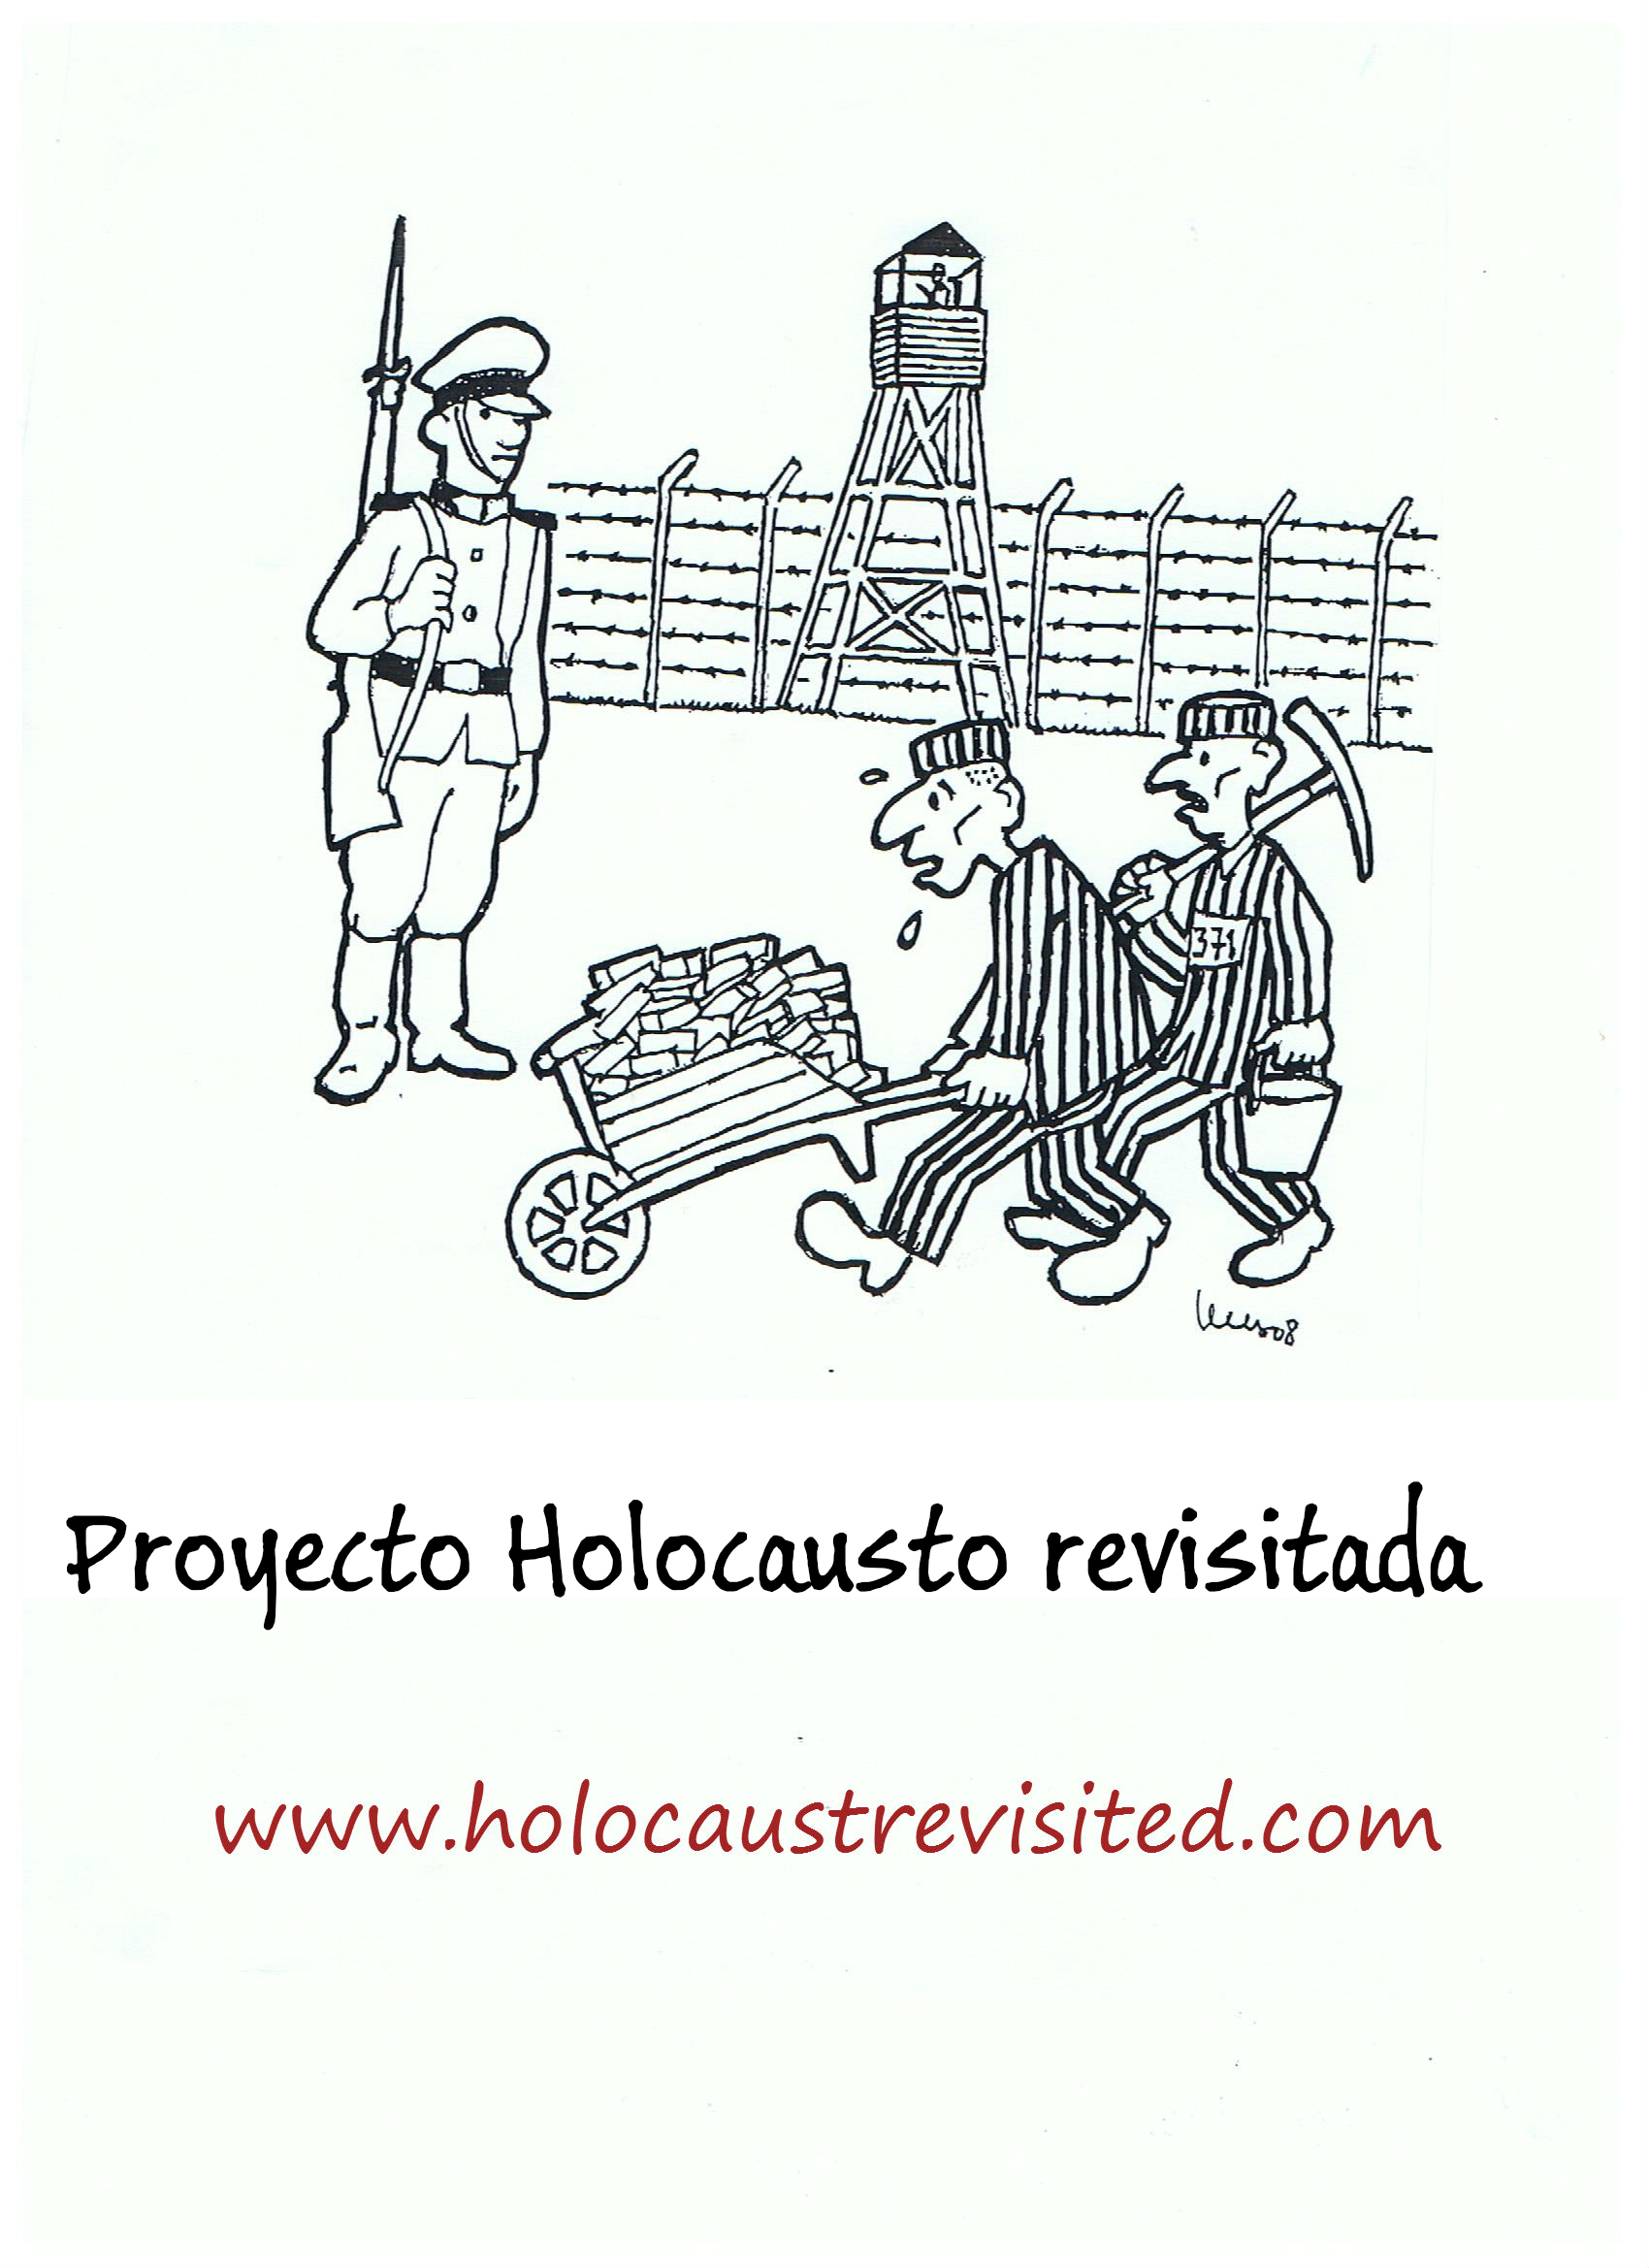 HolocaustRevisited